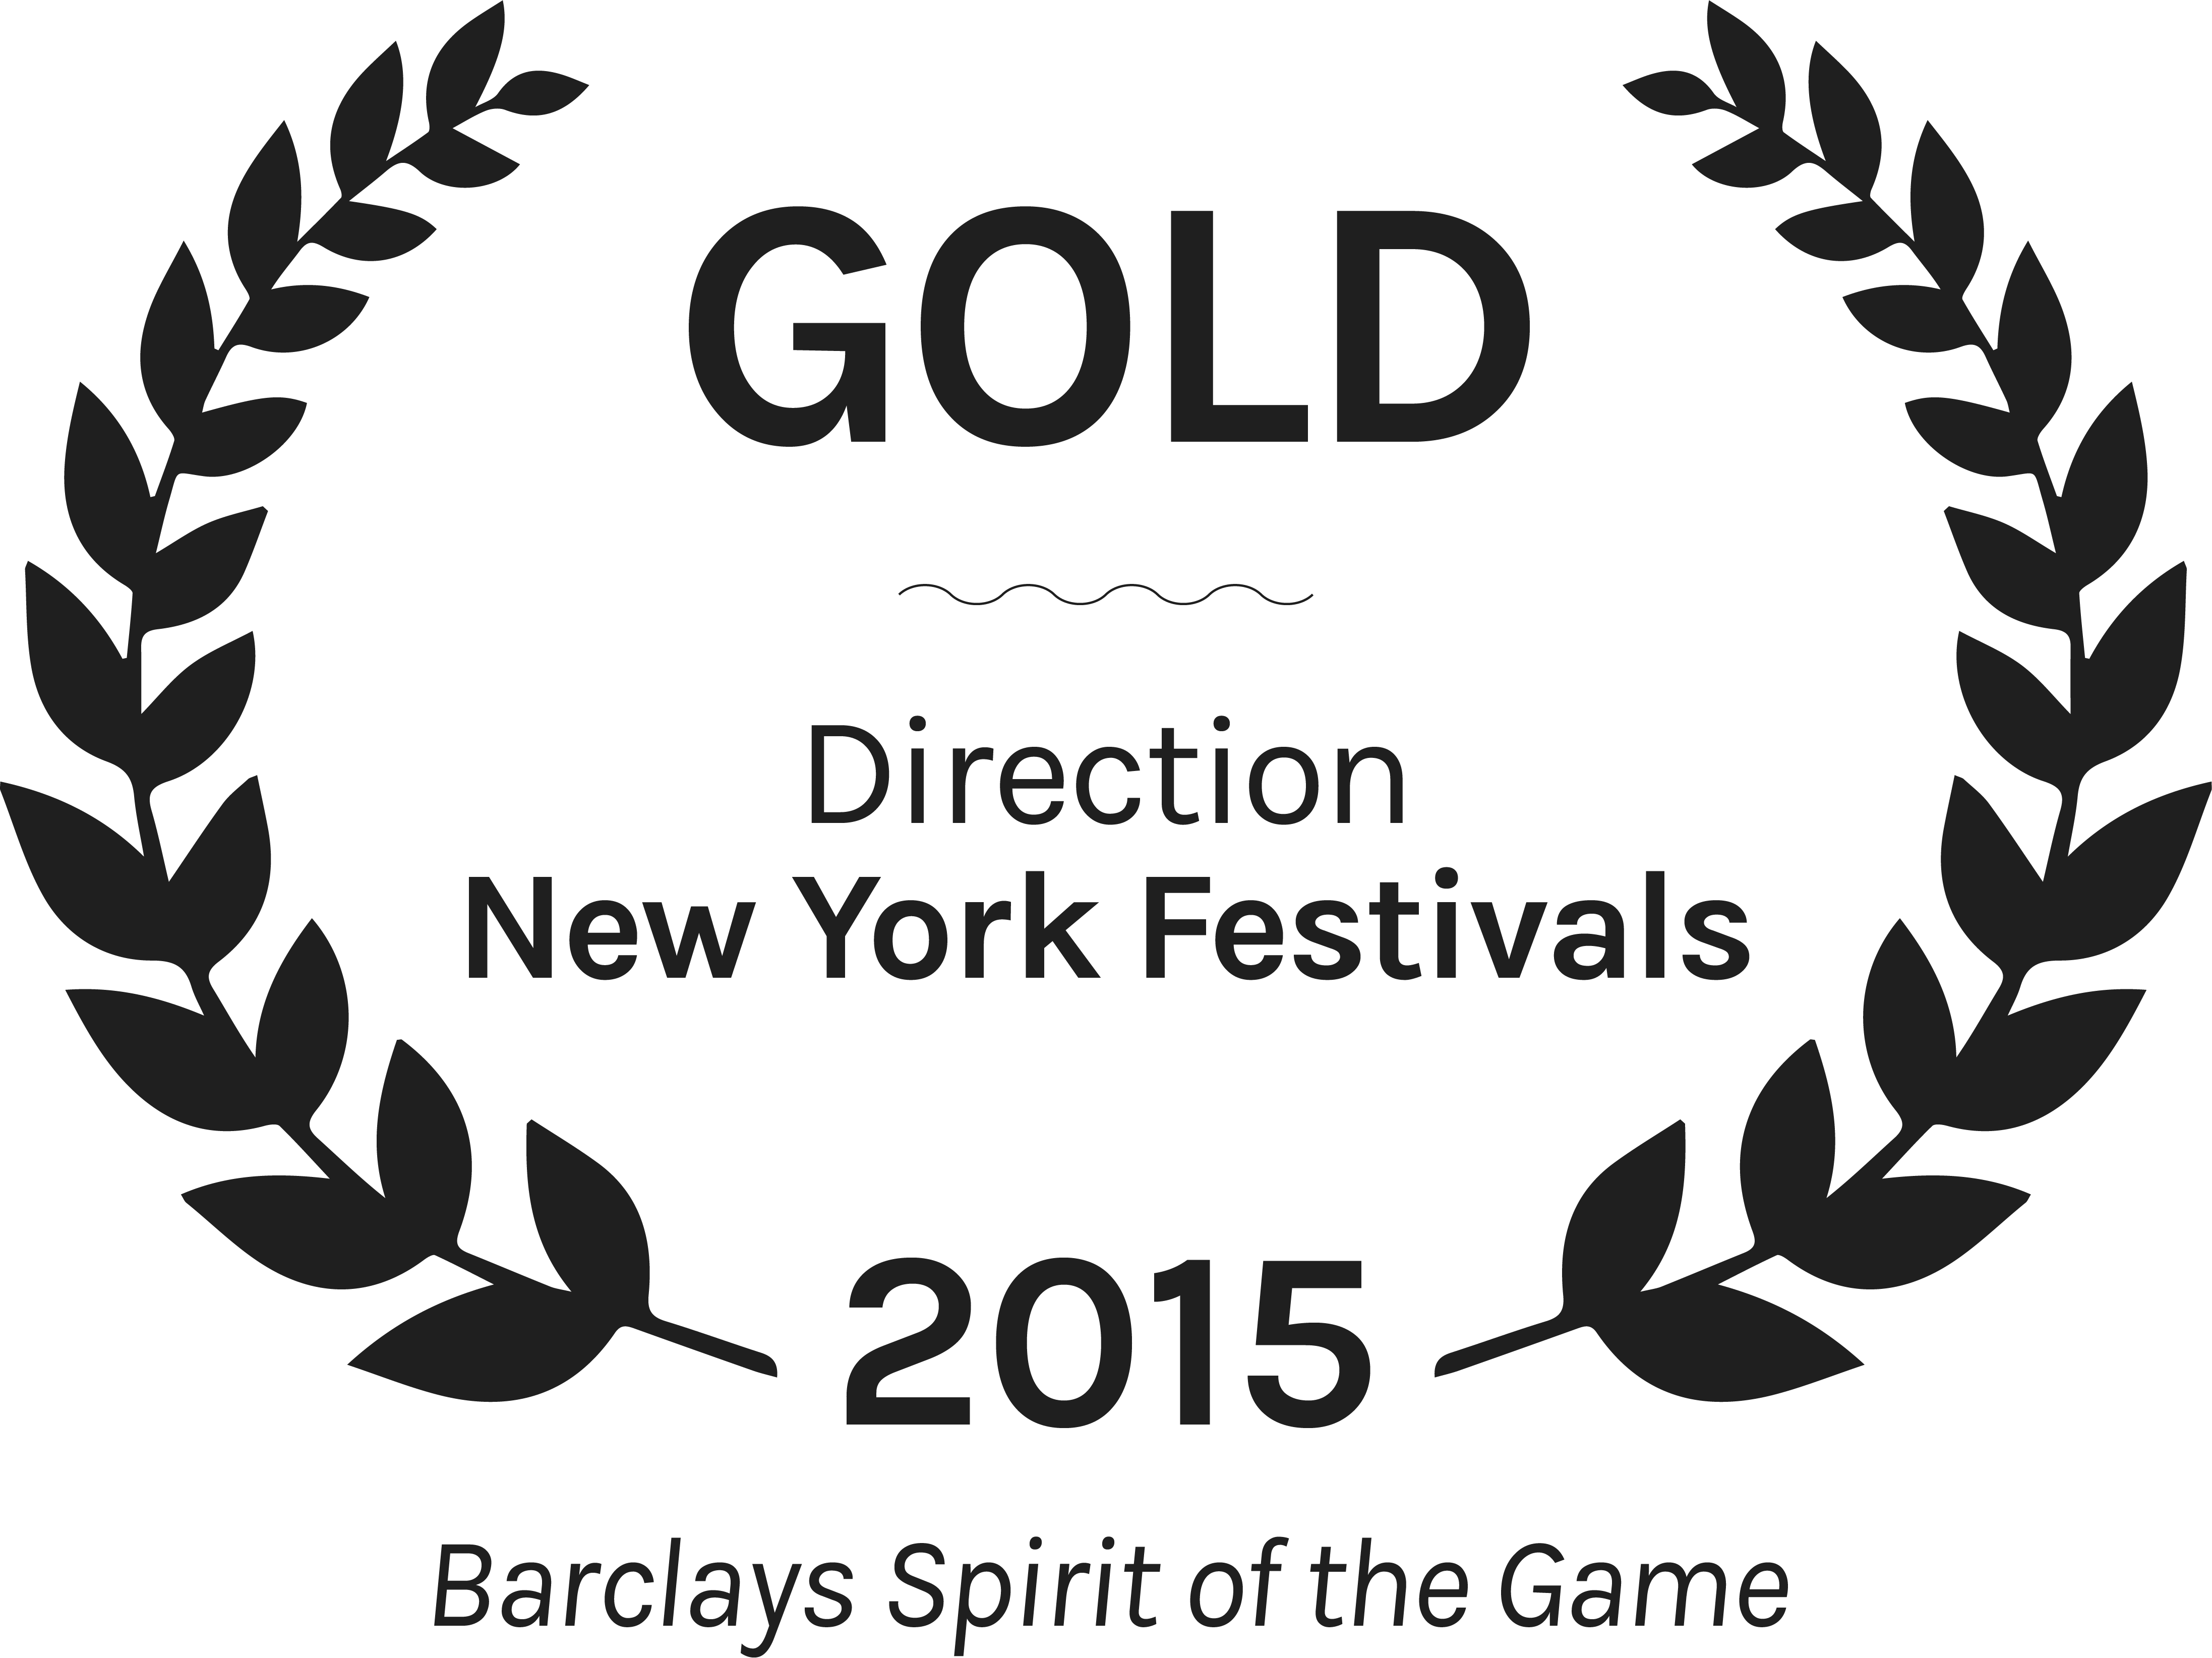 Barclays-Spirit-of-the-Game-Gold-Direction-New-York-Festivals-2015.png